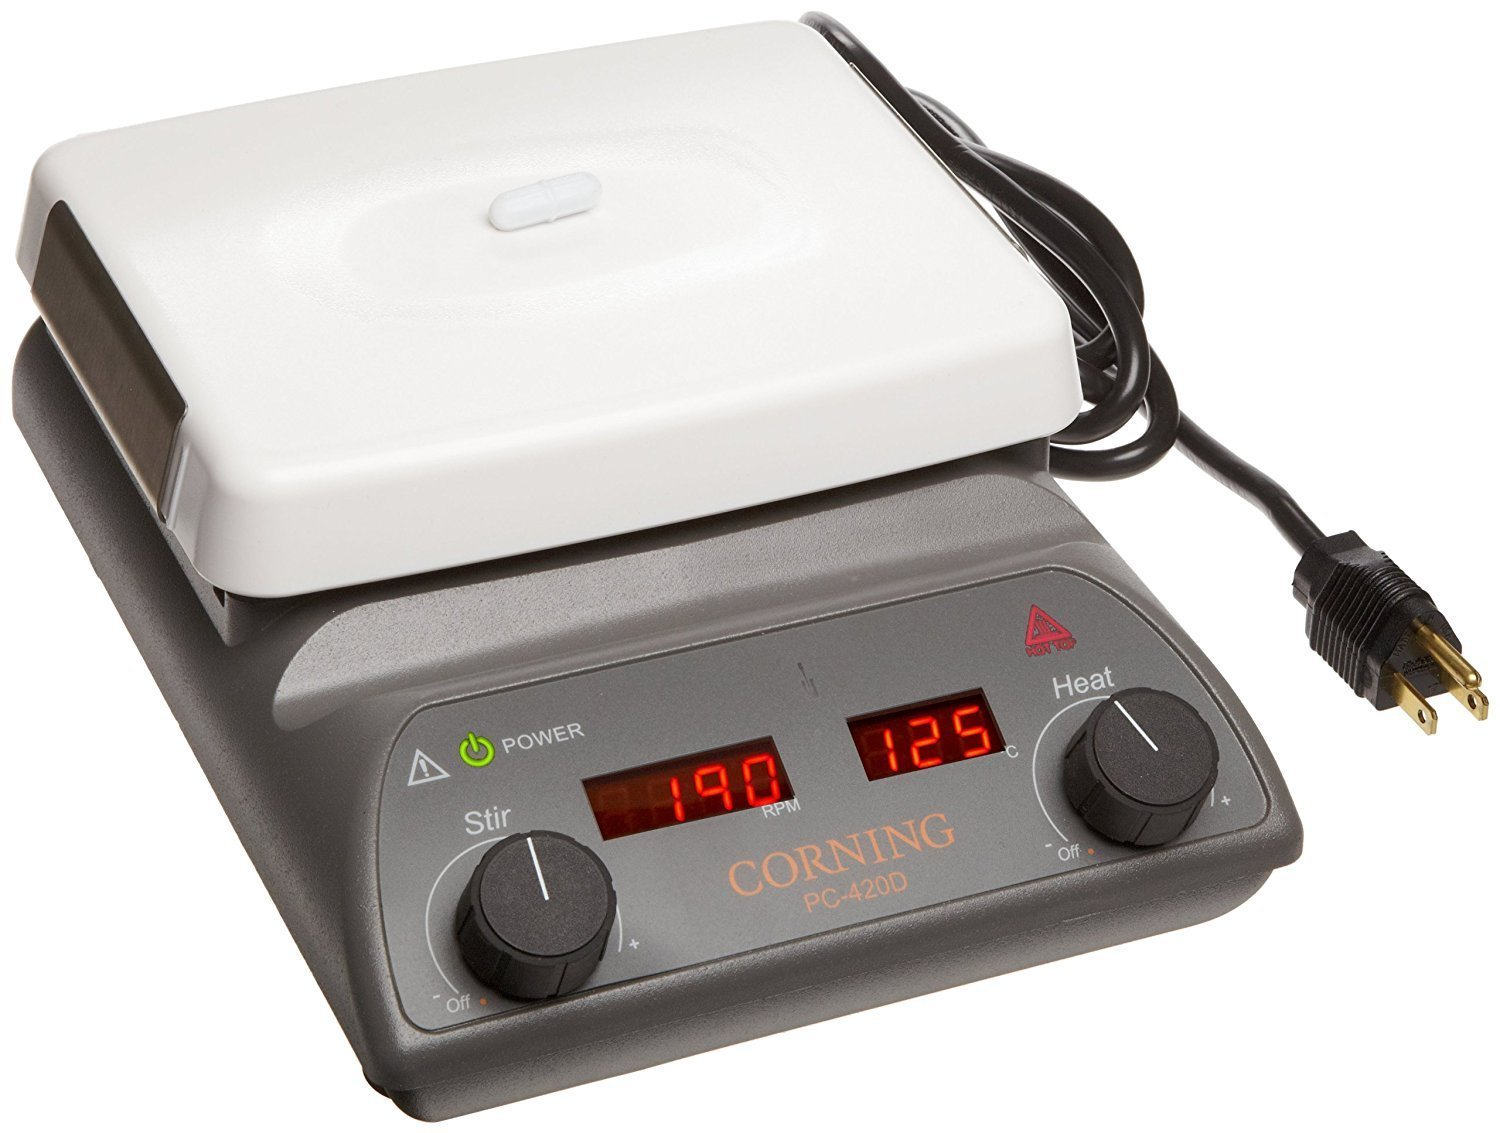 Corning 6795-420D PC-420D Stirring Hot Plate with Digital Display and 5'' x 7'' Pyroceram Top, 5 to 550 Degree C, 120V/60Hz by Corning